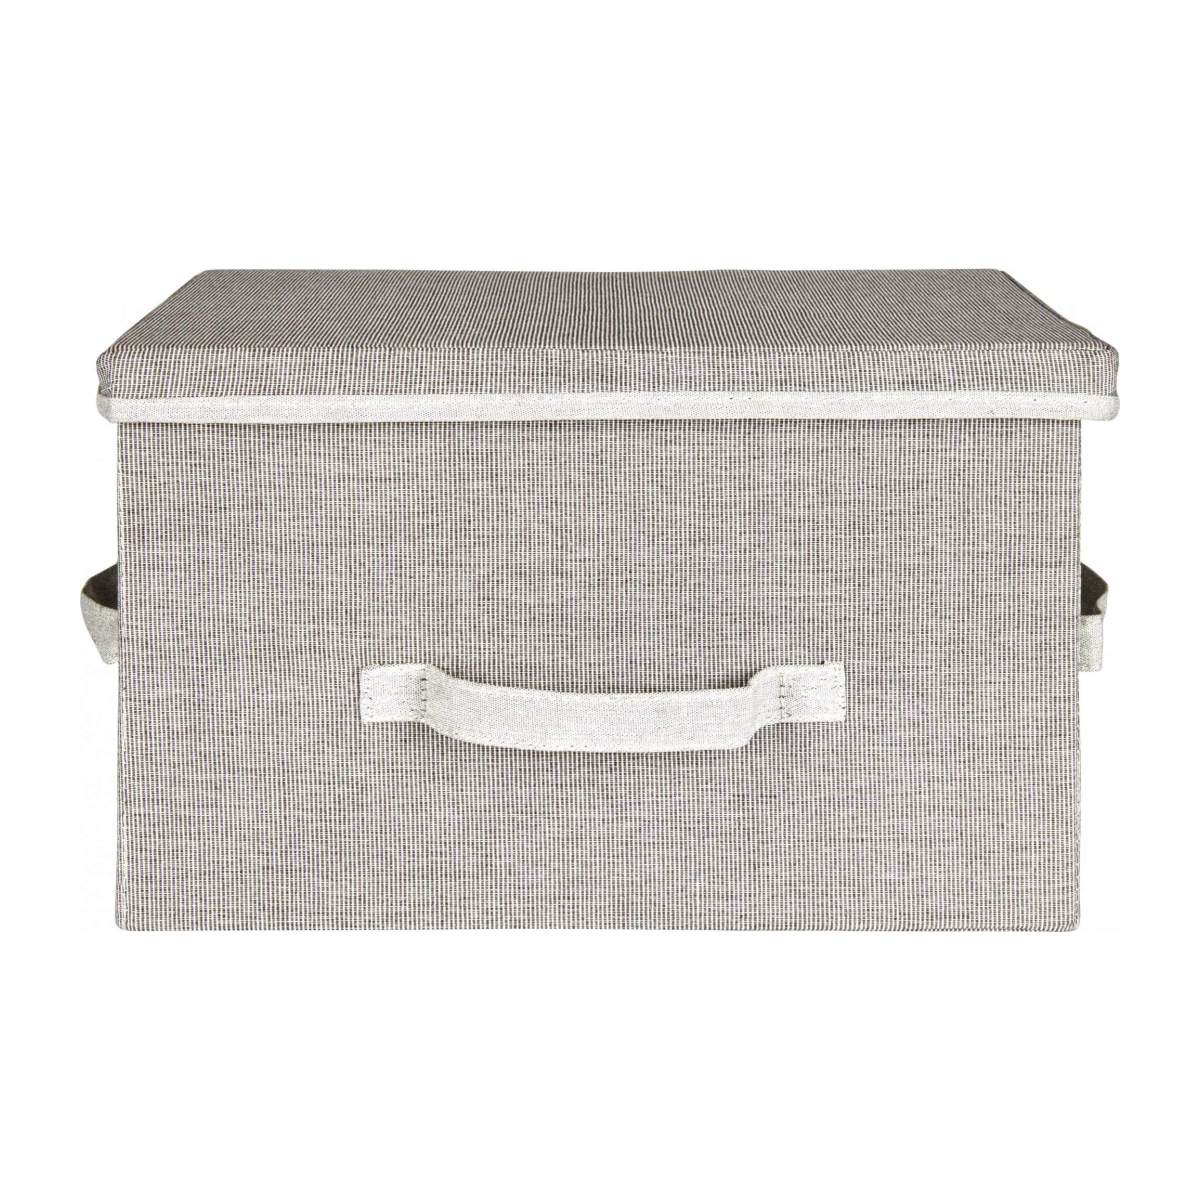 Large Storage basket, grey fabric and bamboo n°2